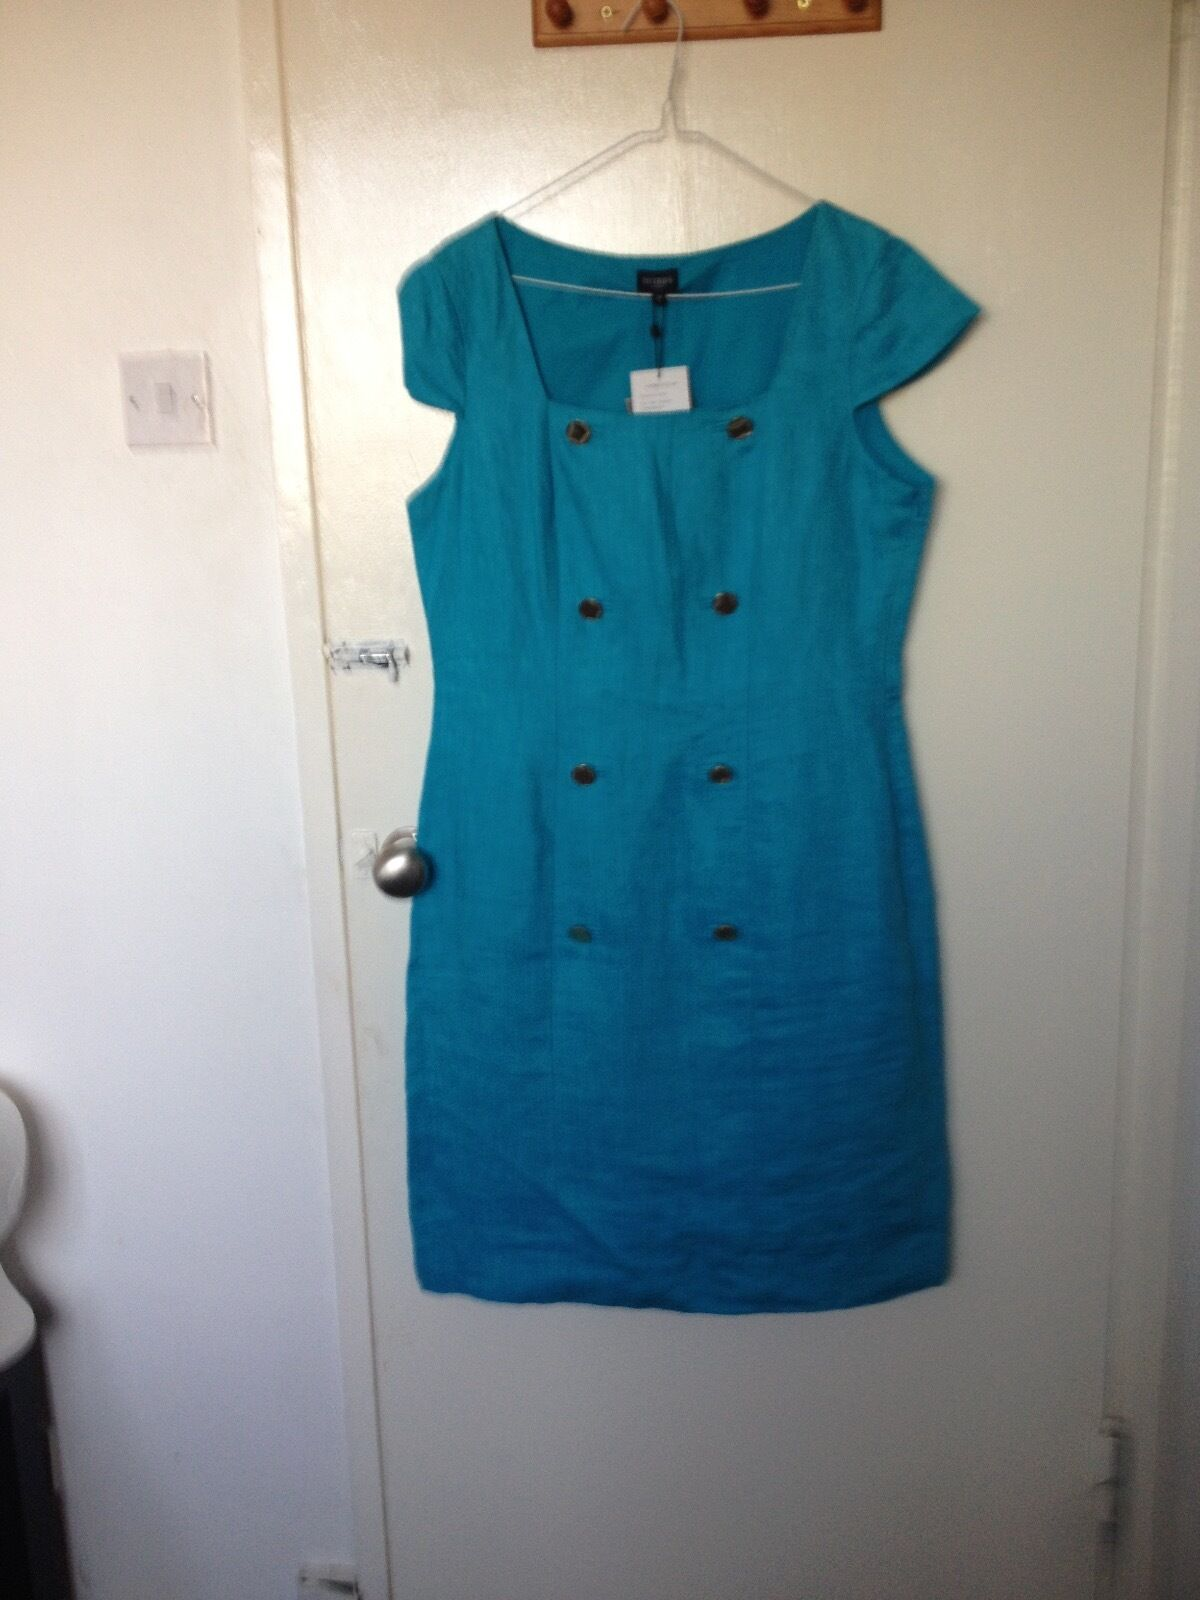 Turquoise Cotton dress from Hobbs